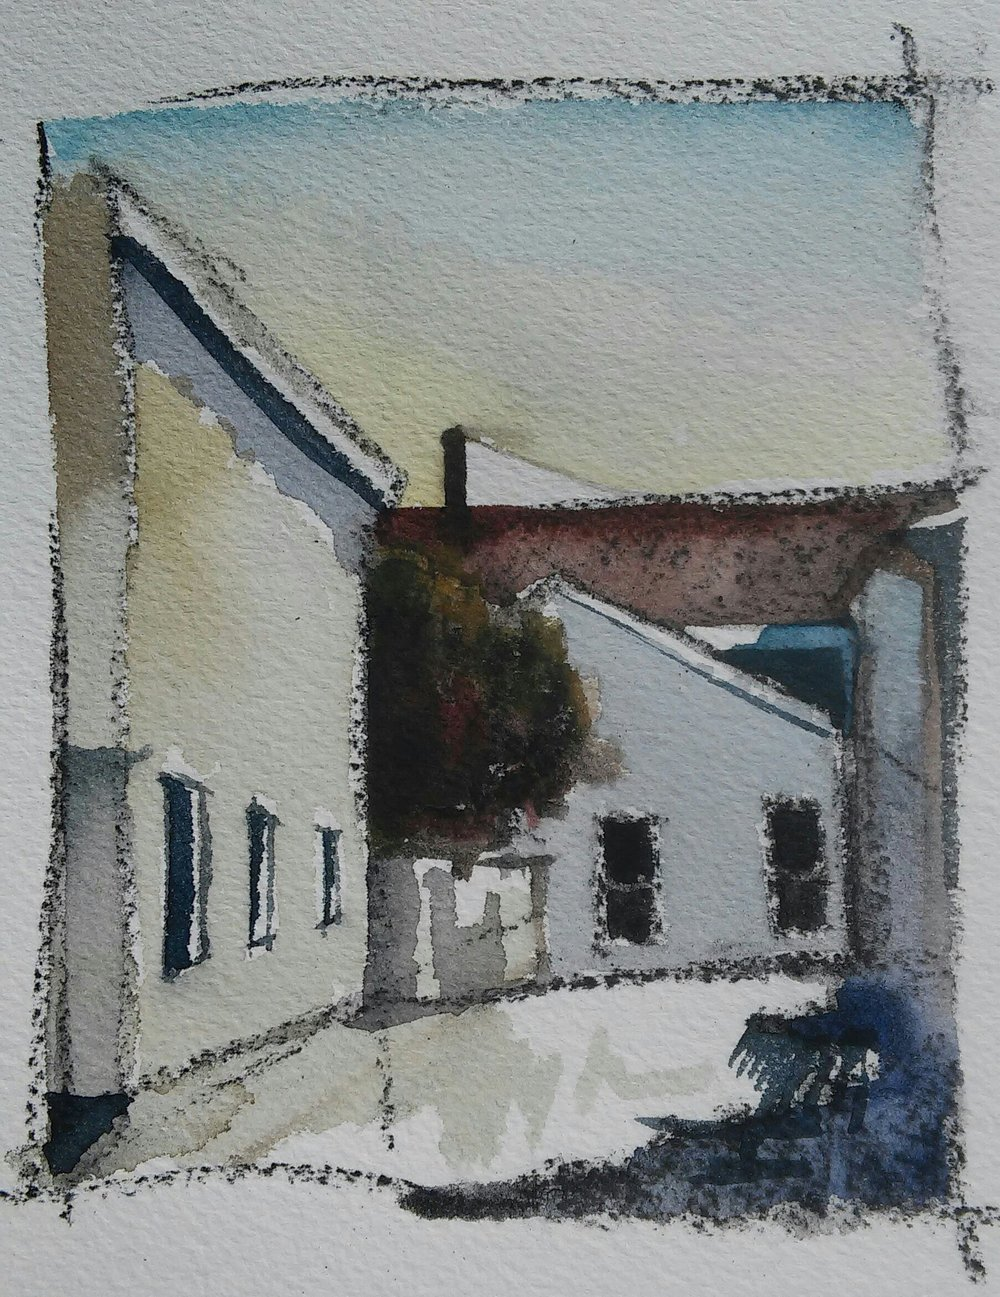 4x5 Watercolor on Watercolor paper Cambridge, High Street SOLD